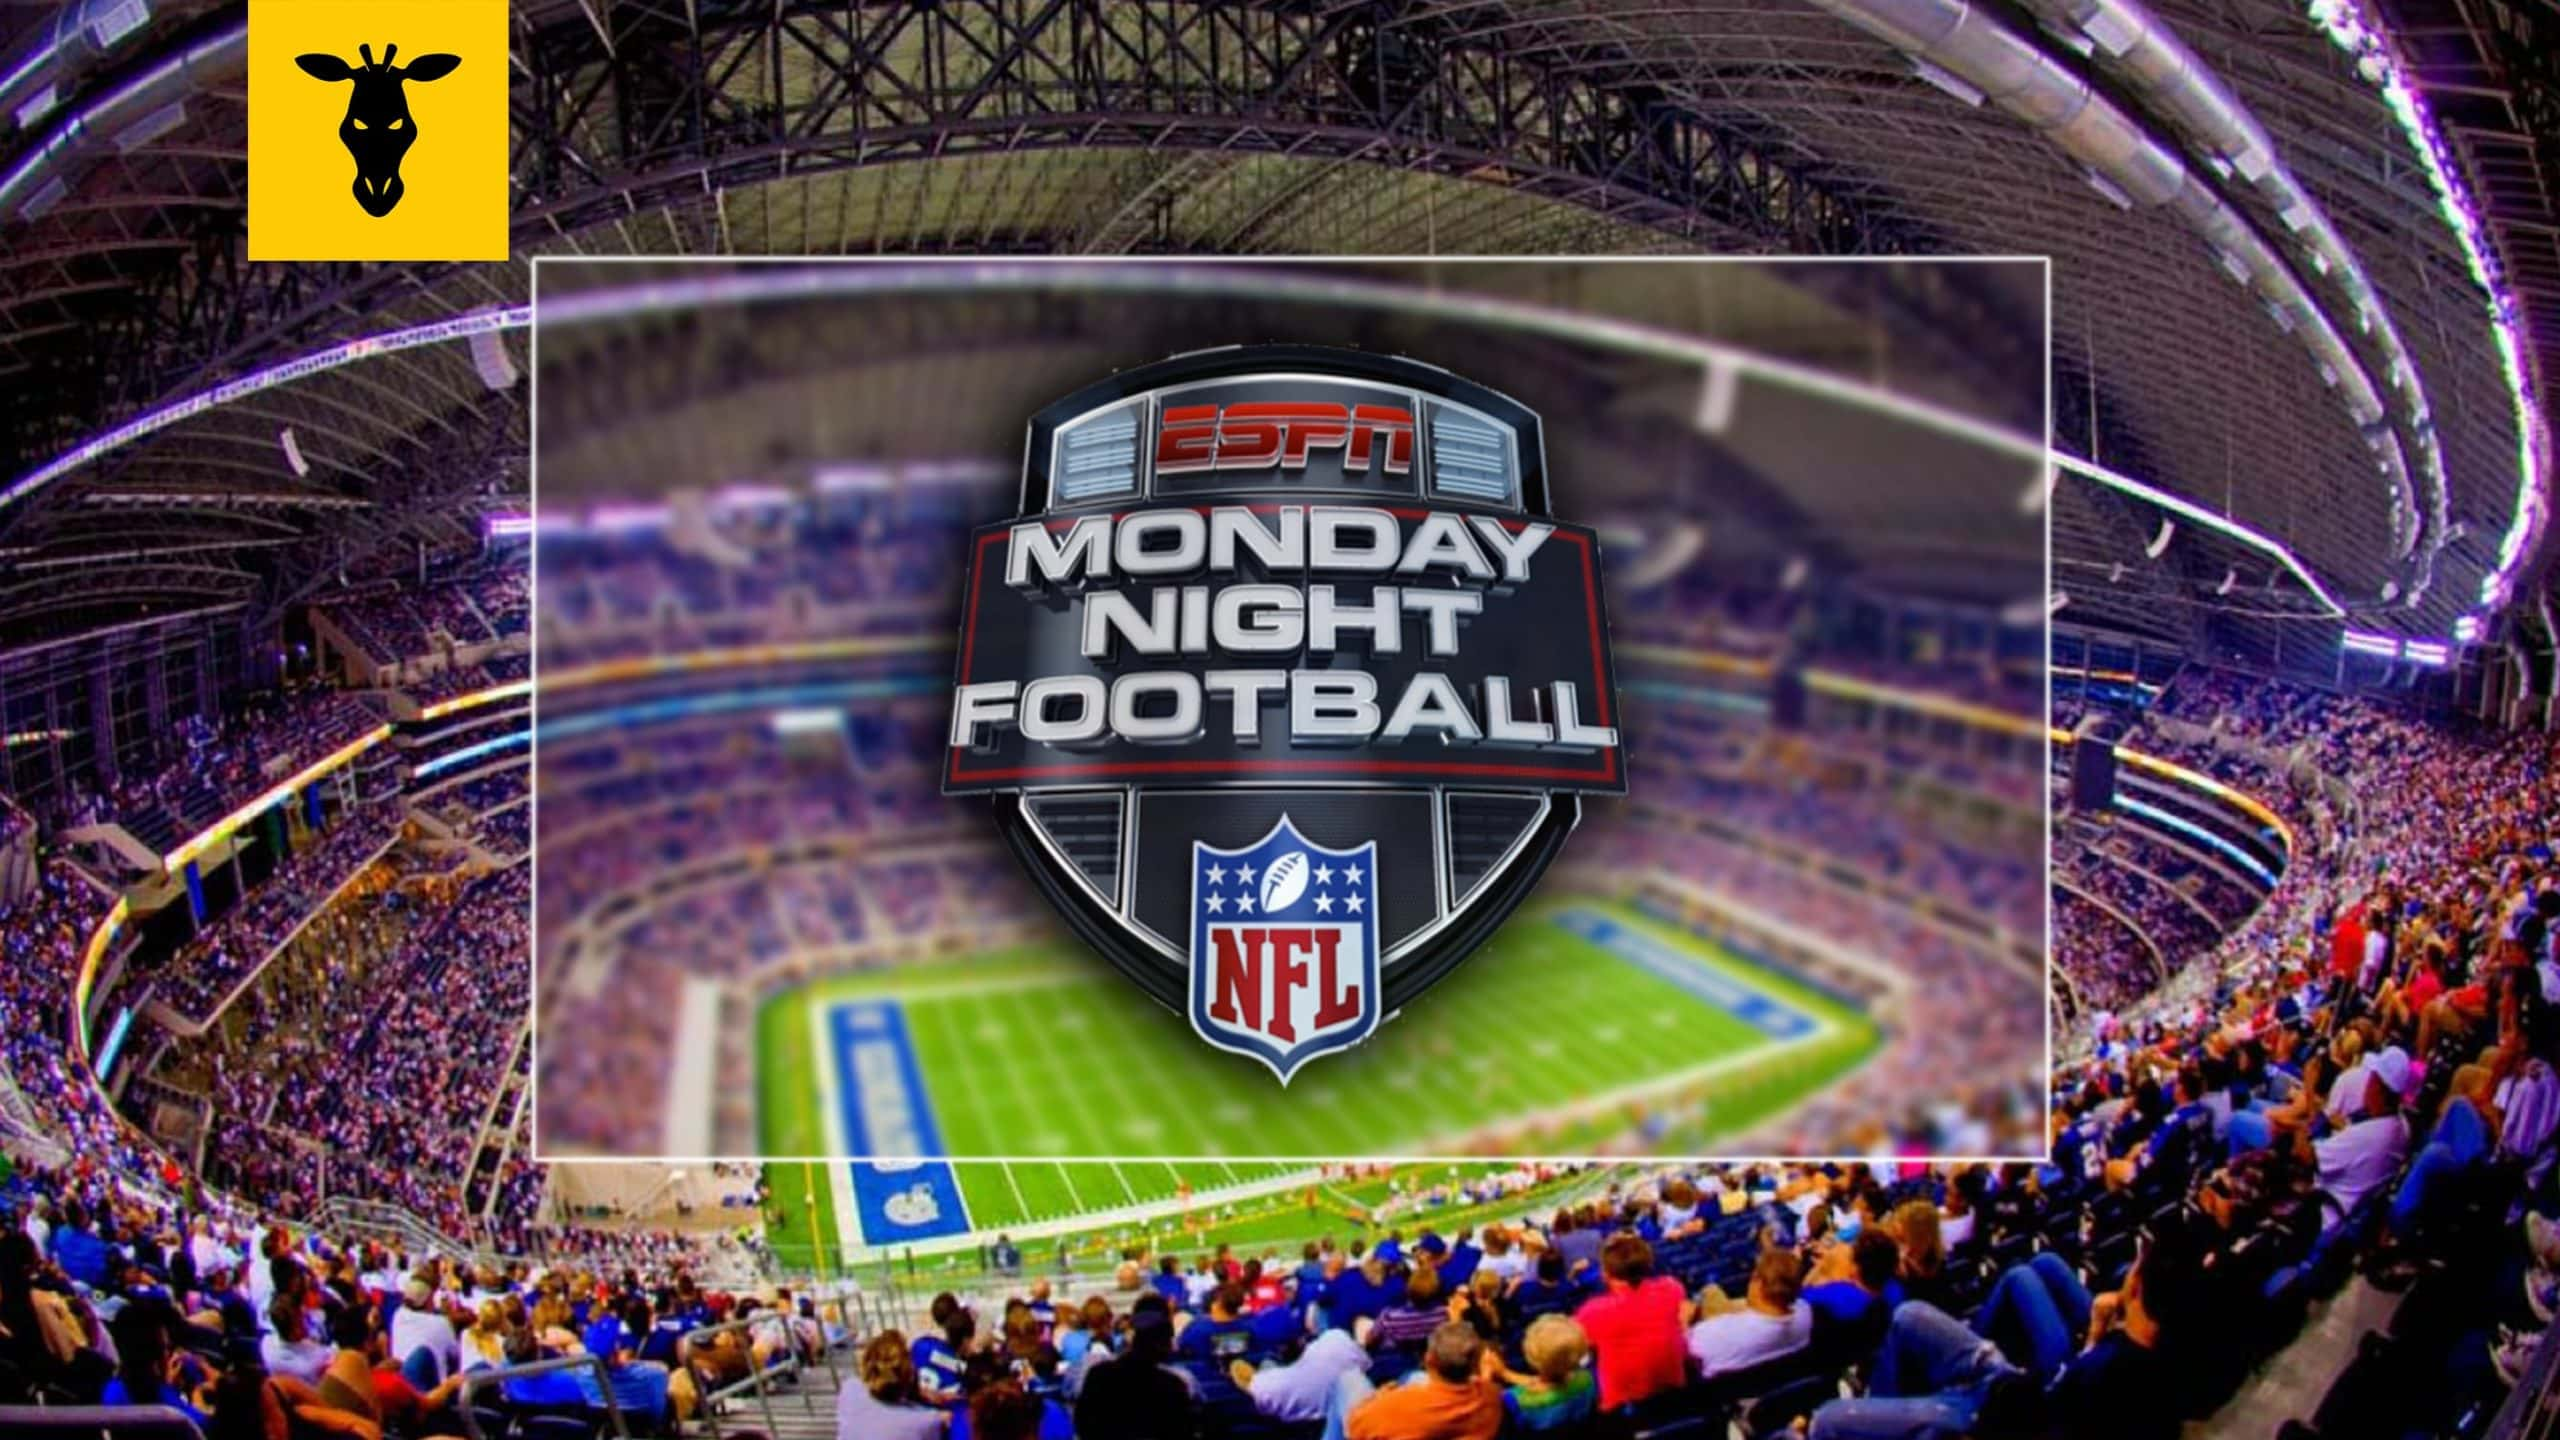 ESPN Monday Night Football Cover